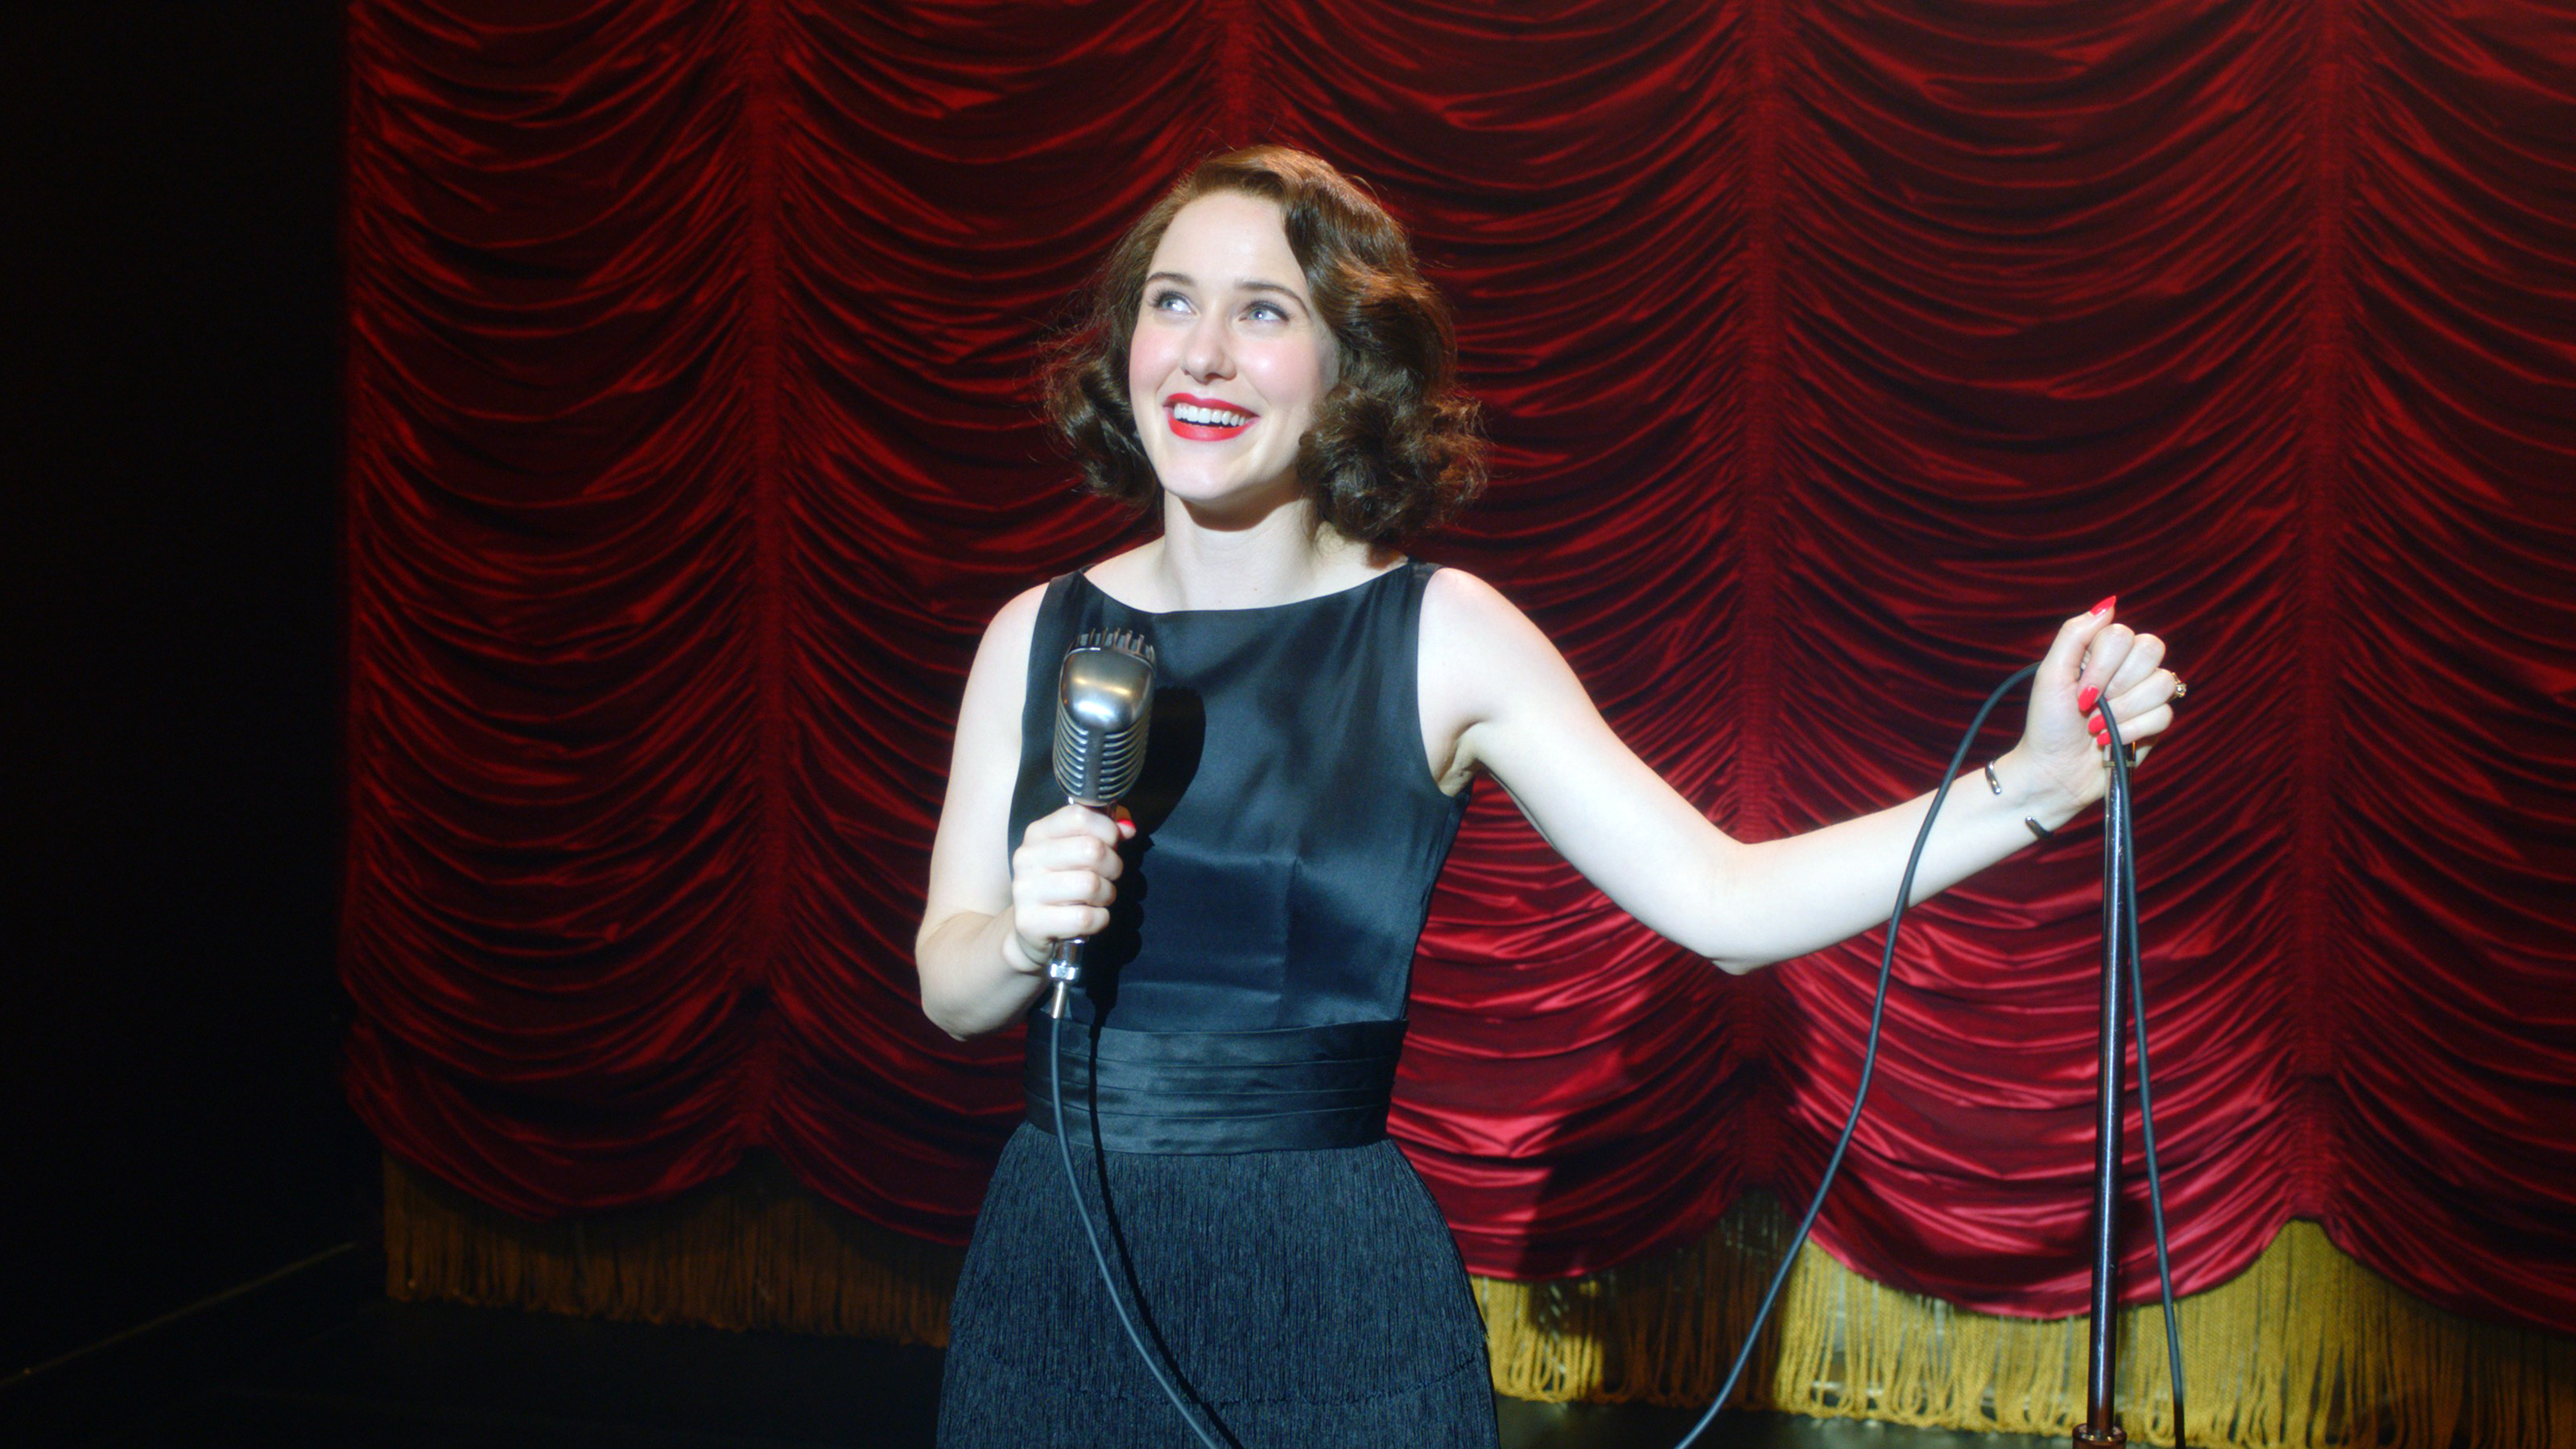 Rachel Brosnahan in 'The Marvelous Mrs. Maisel'